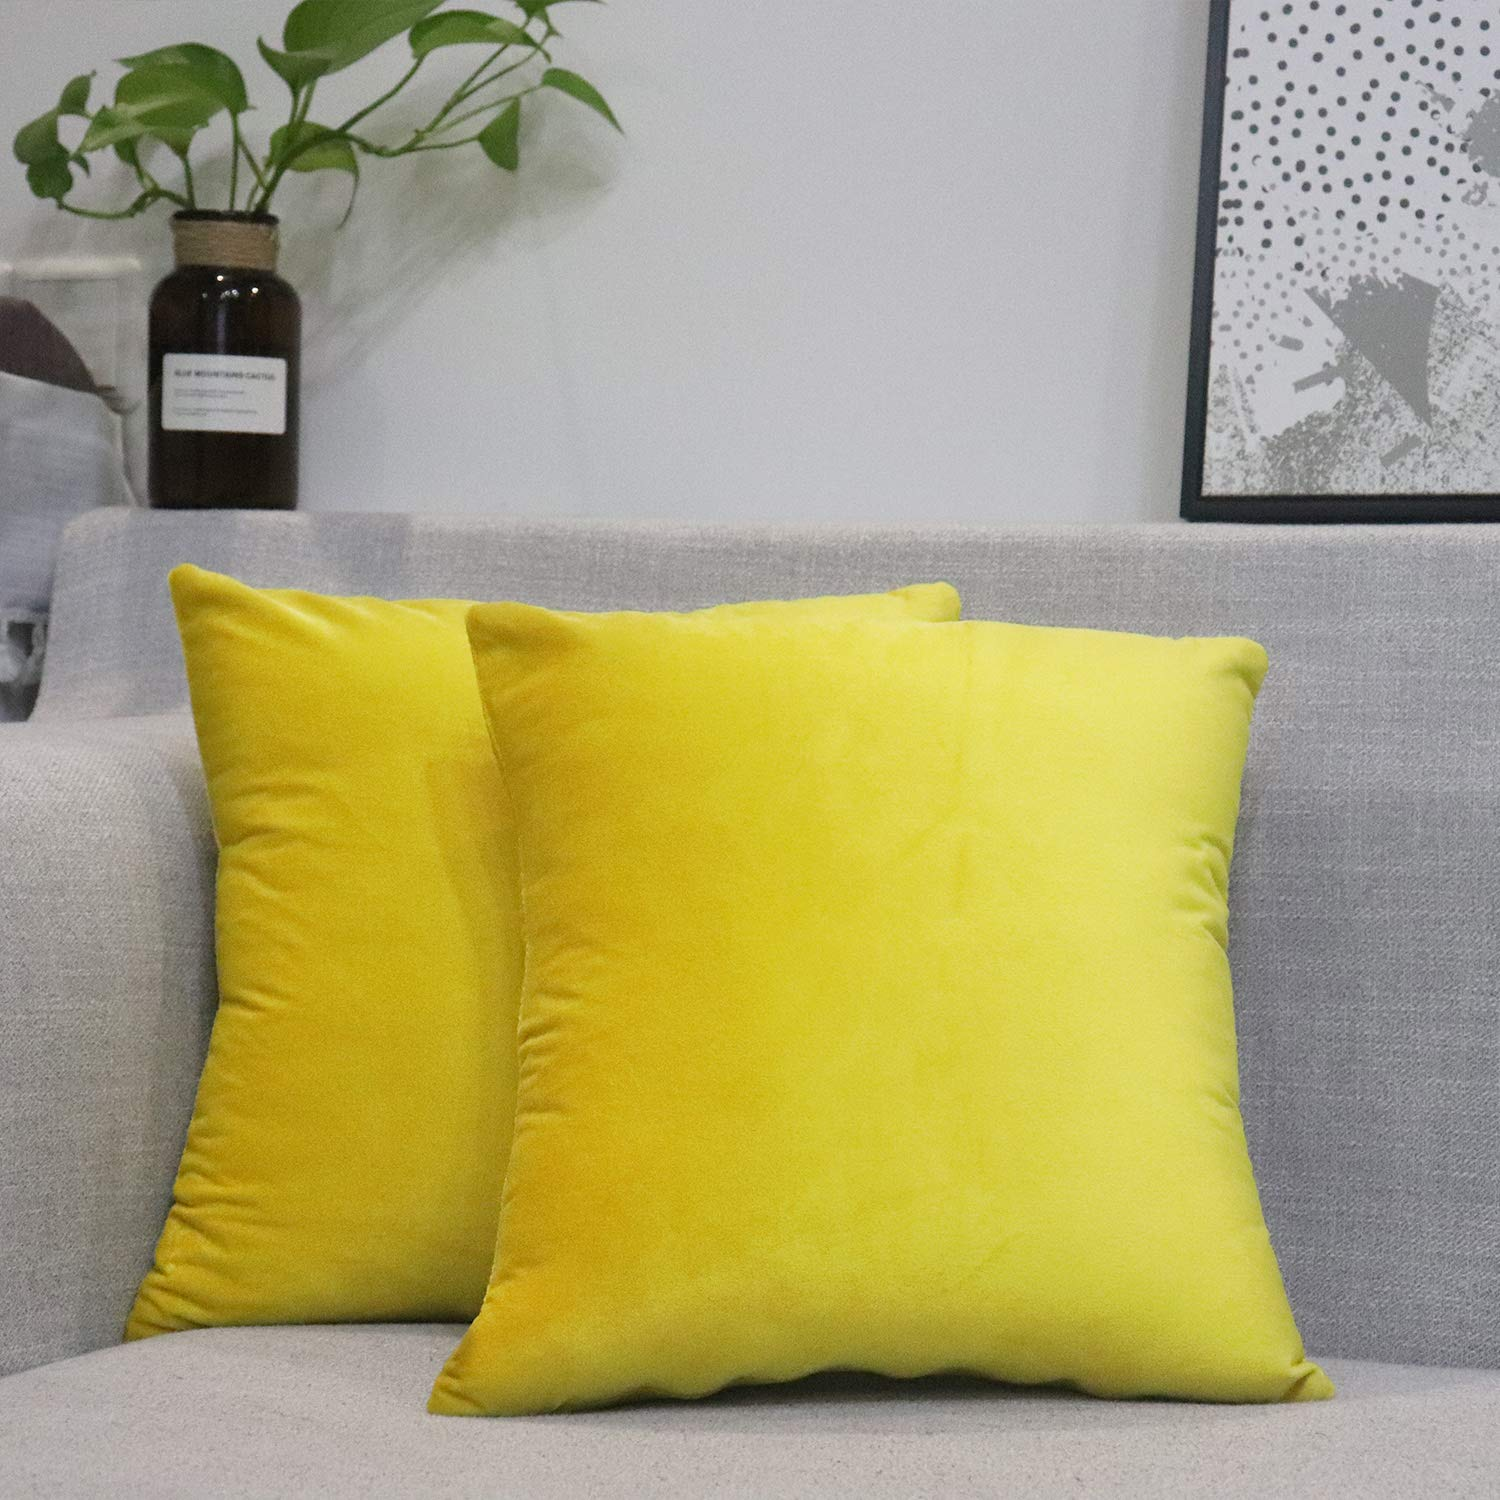 WEYON Throw-Pillow Covers Velvet Soft Decorative Square Cushion Cases Pillowcases for Home Decor Sofa Bedroom Car, Set of 2, 16 x 16 Inches Sunflower Yellow